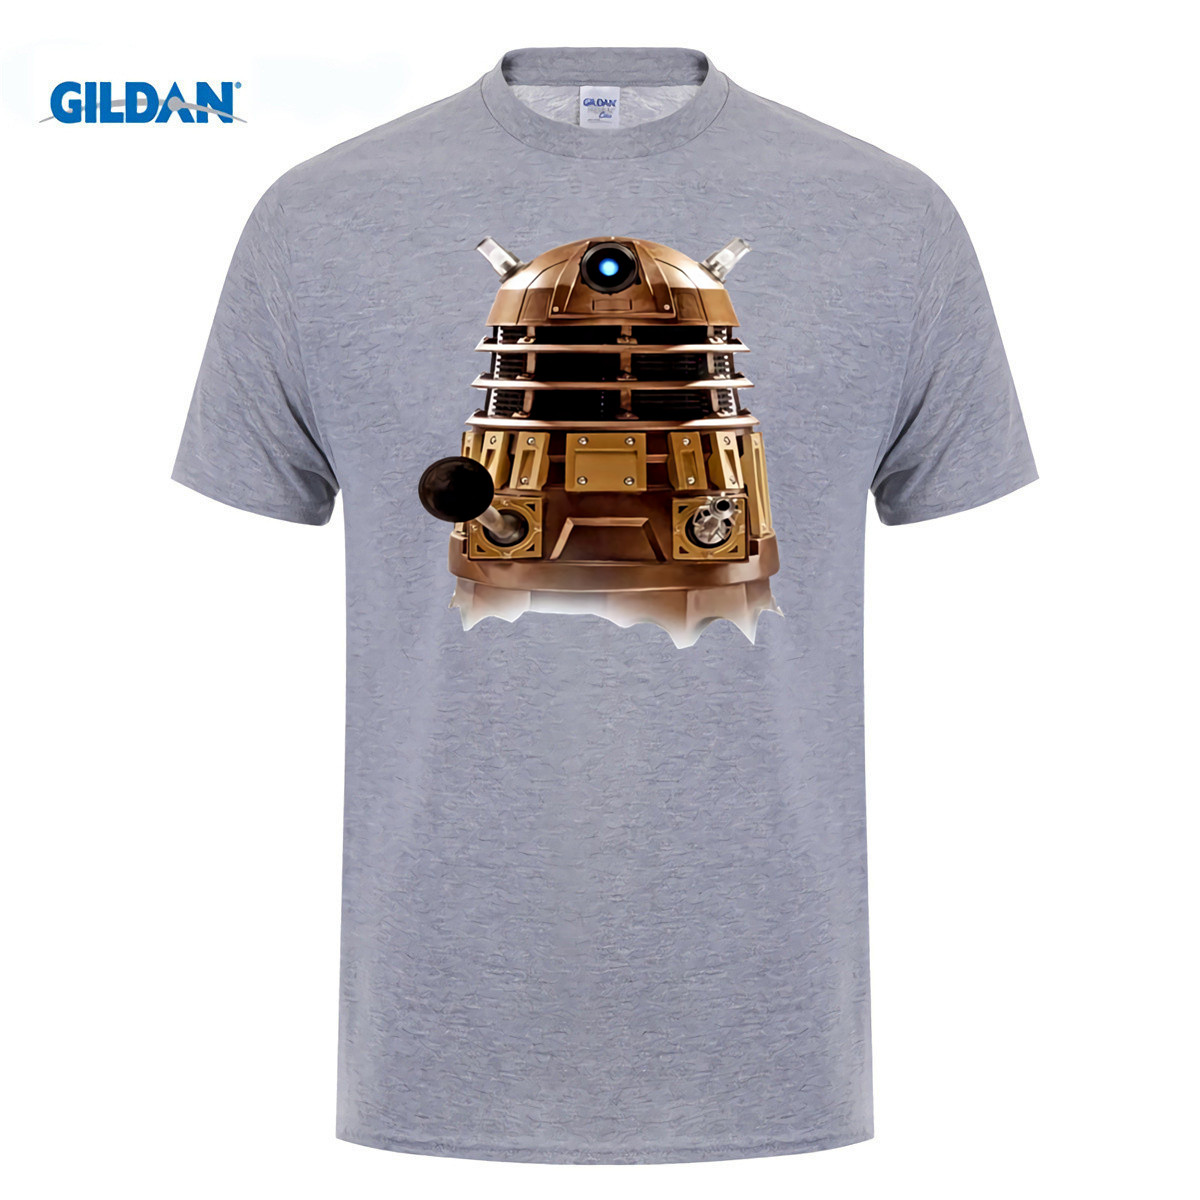 GILDAN Newest Breaking the Time Tardis doctor who Printed T shirts mens fashion short sleeve Novelty Cool Tee Tops Clothes